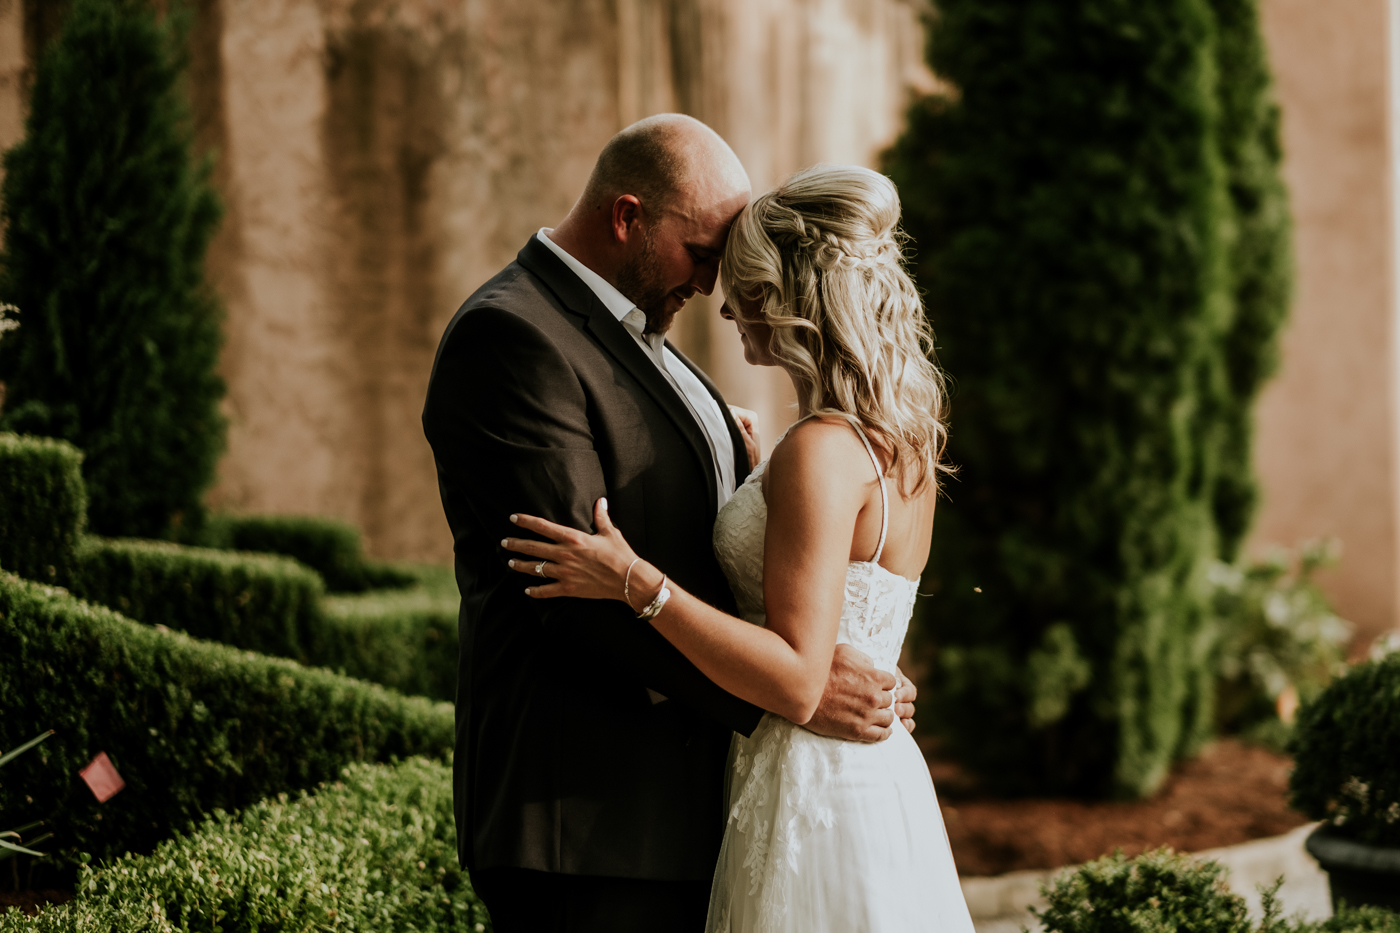 Haley+Kurtis.Blog©mileswittboyer.com2018-33.jpg